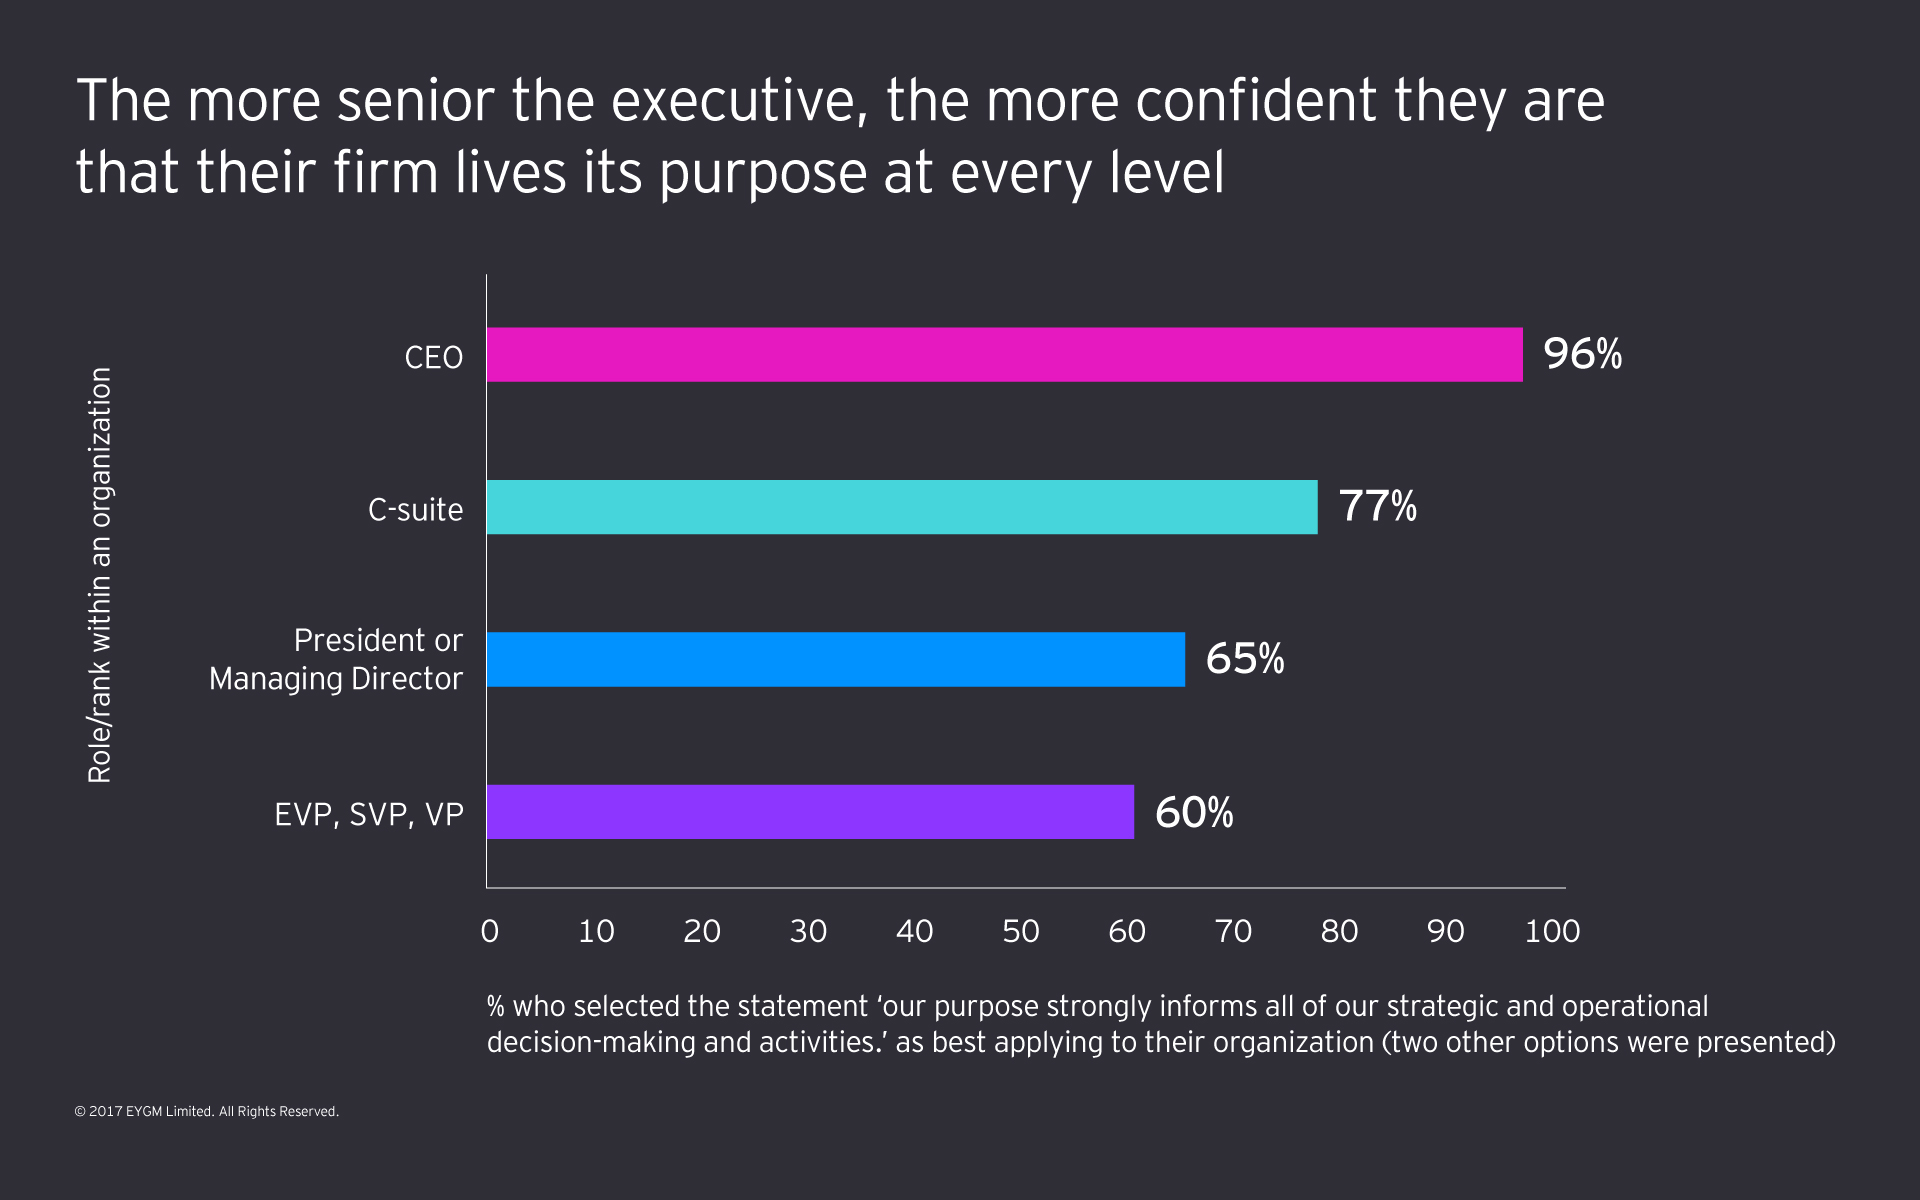 Graph showing that the more senior the executive, the more confident they are that their firm lives its purpose at every level.